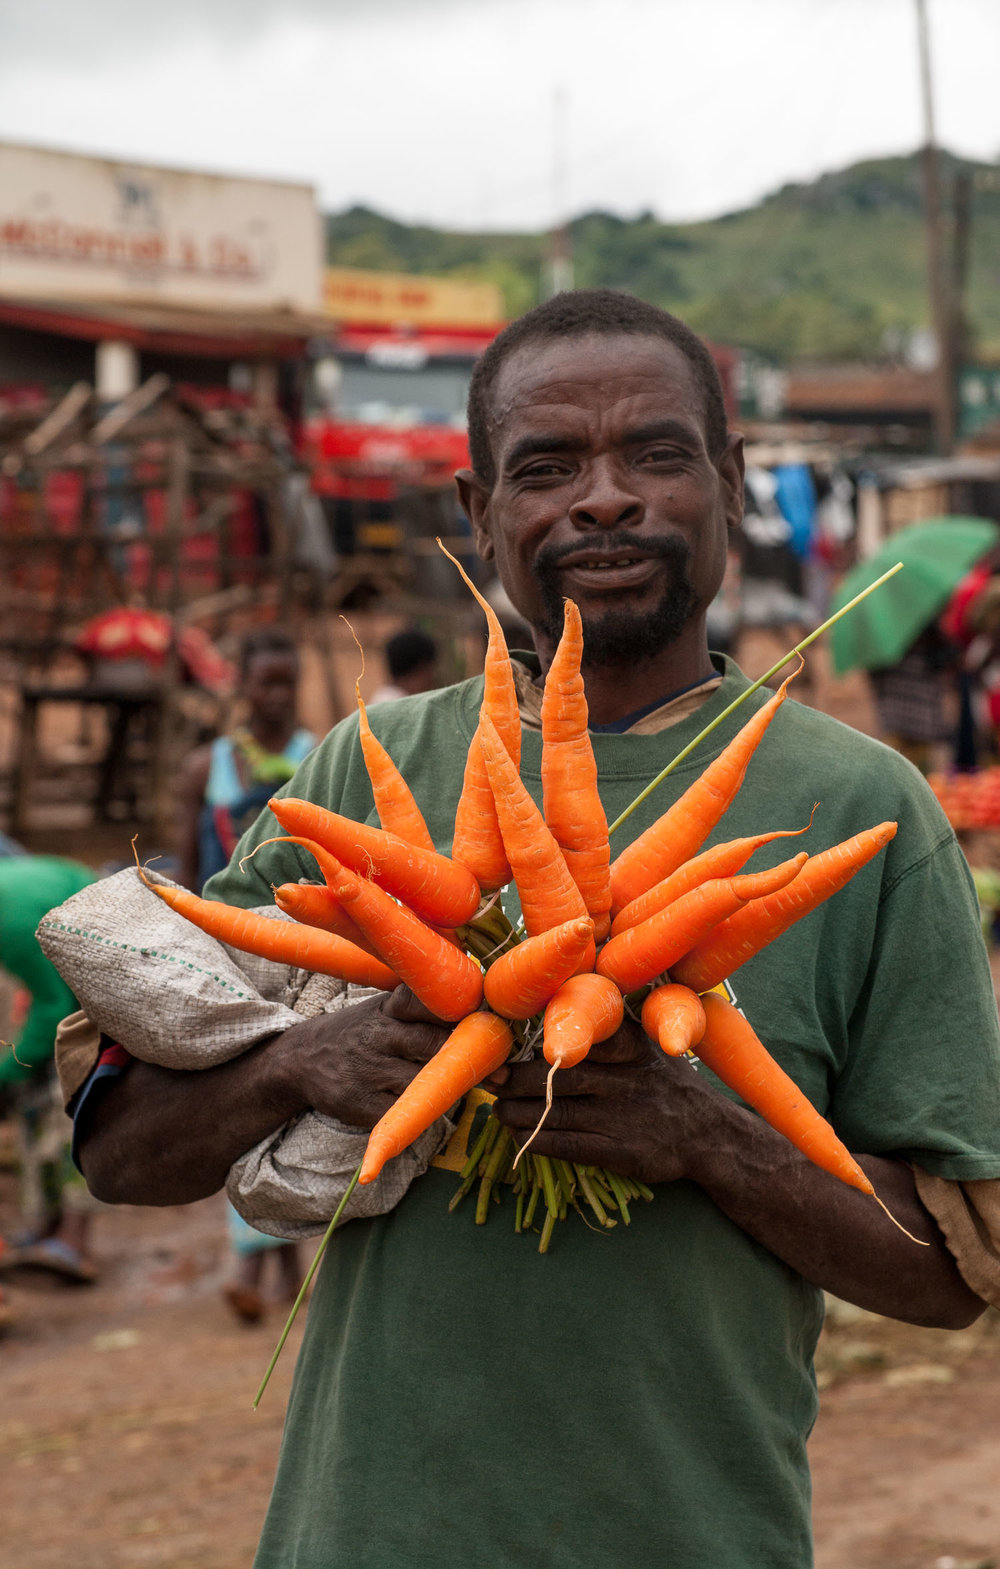 Farmer selling carrots at Lusulu Market, Malawi & Mozambique Border, March 2011. Photo credit: Sheridan Jones McCrae ©